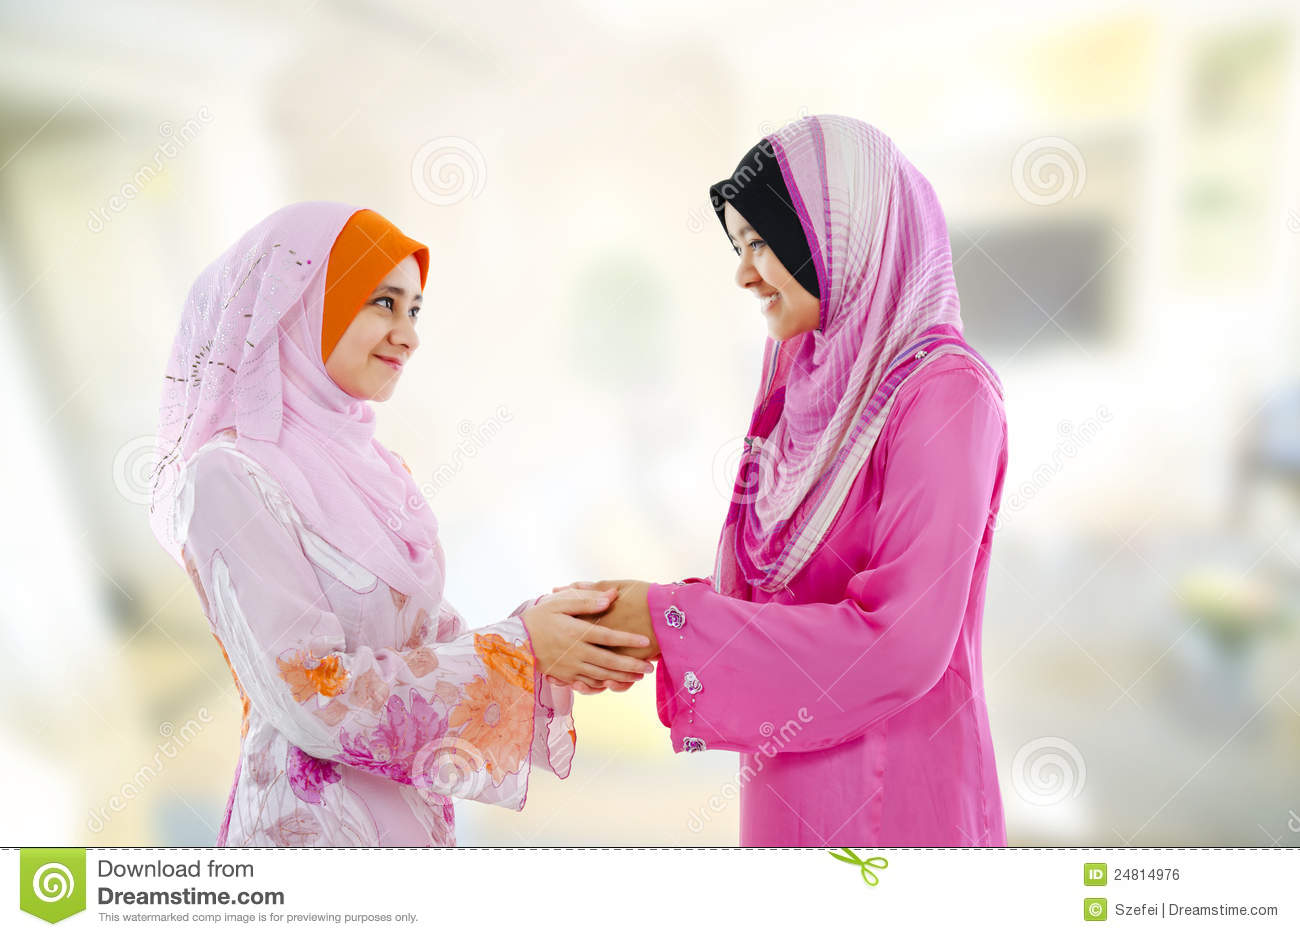 Muslim Greeting Royalty Free Stock Image - Image: 24814976